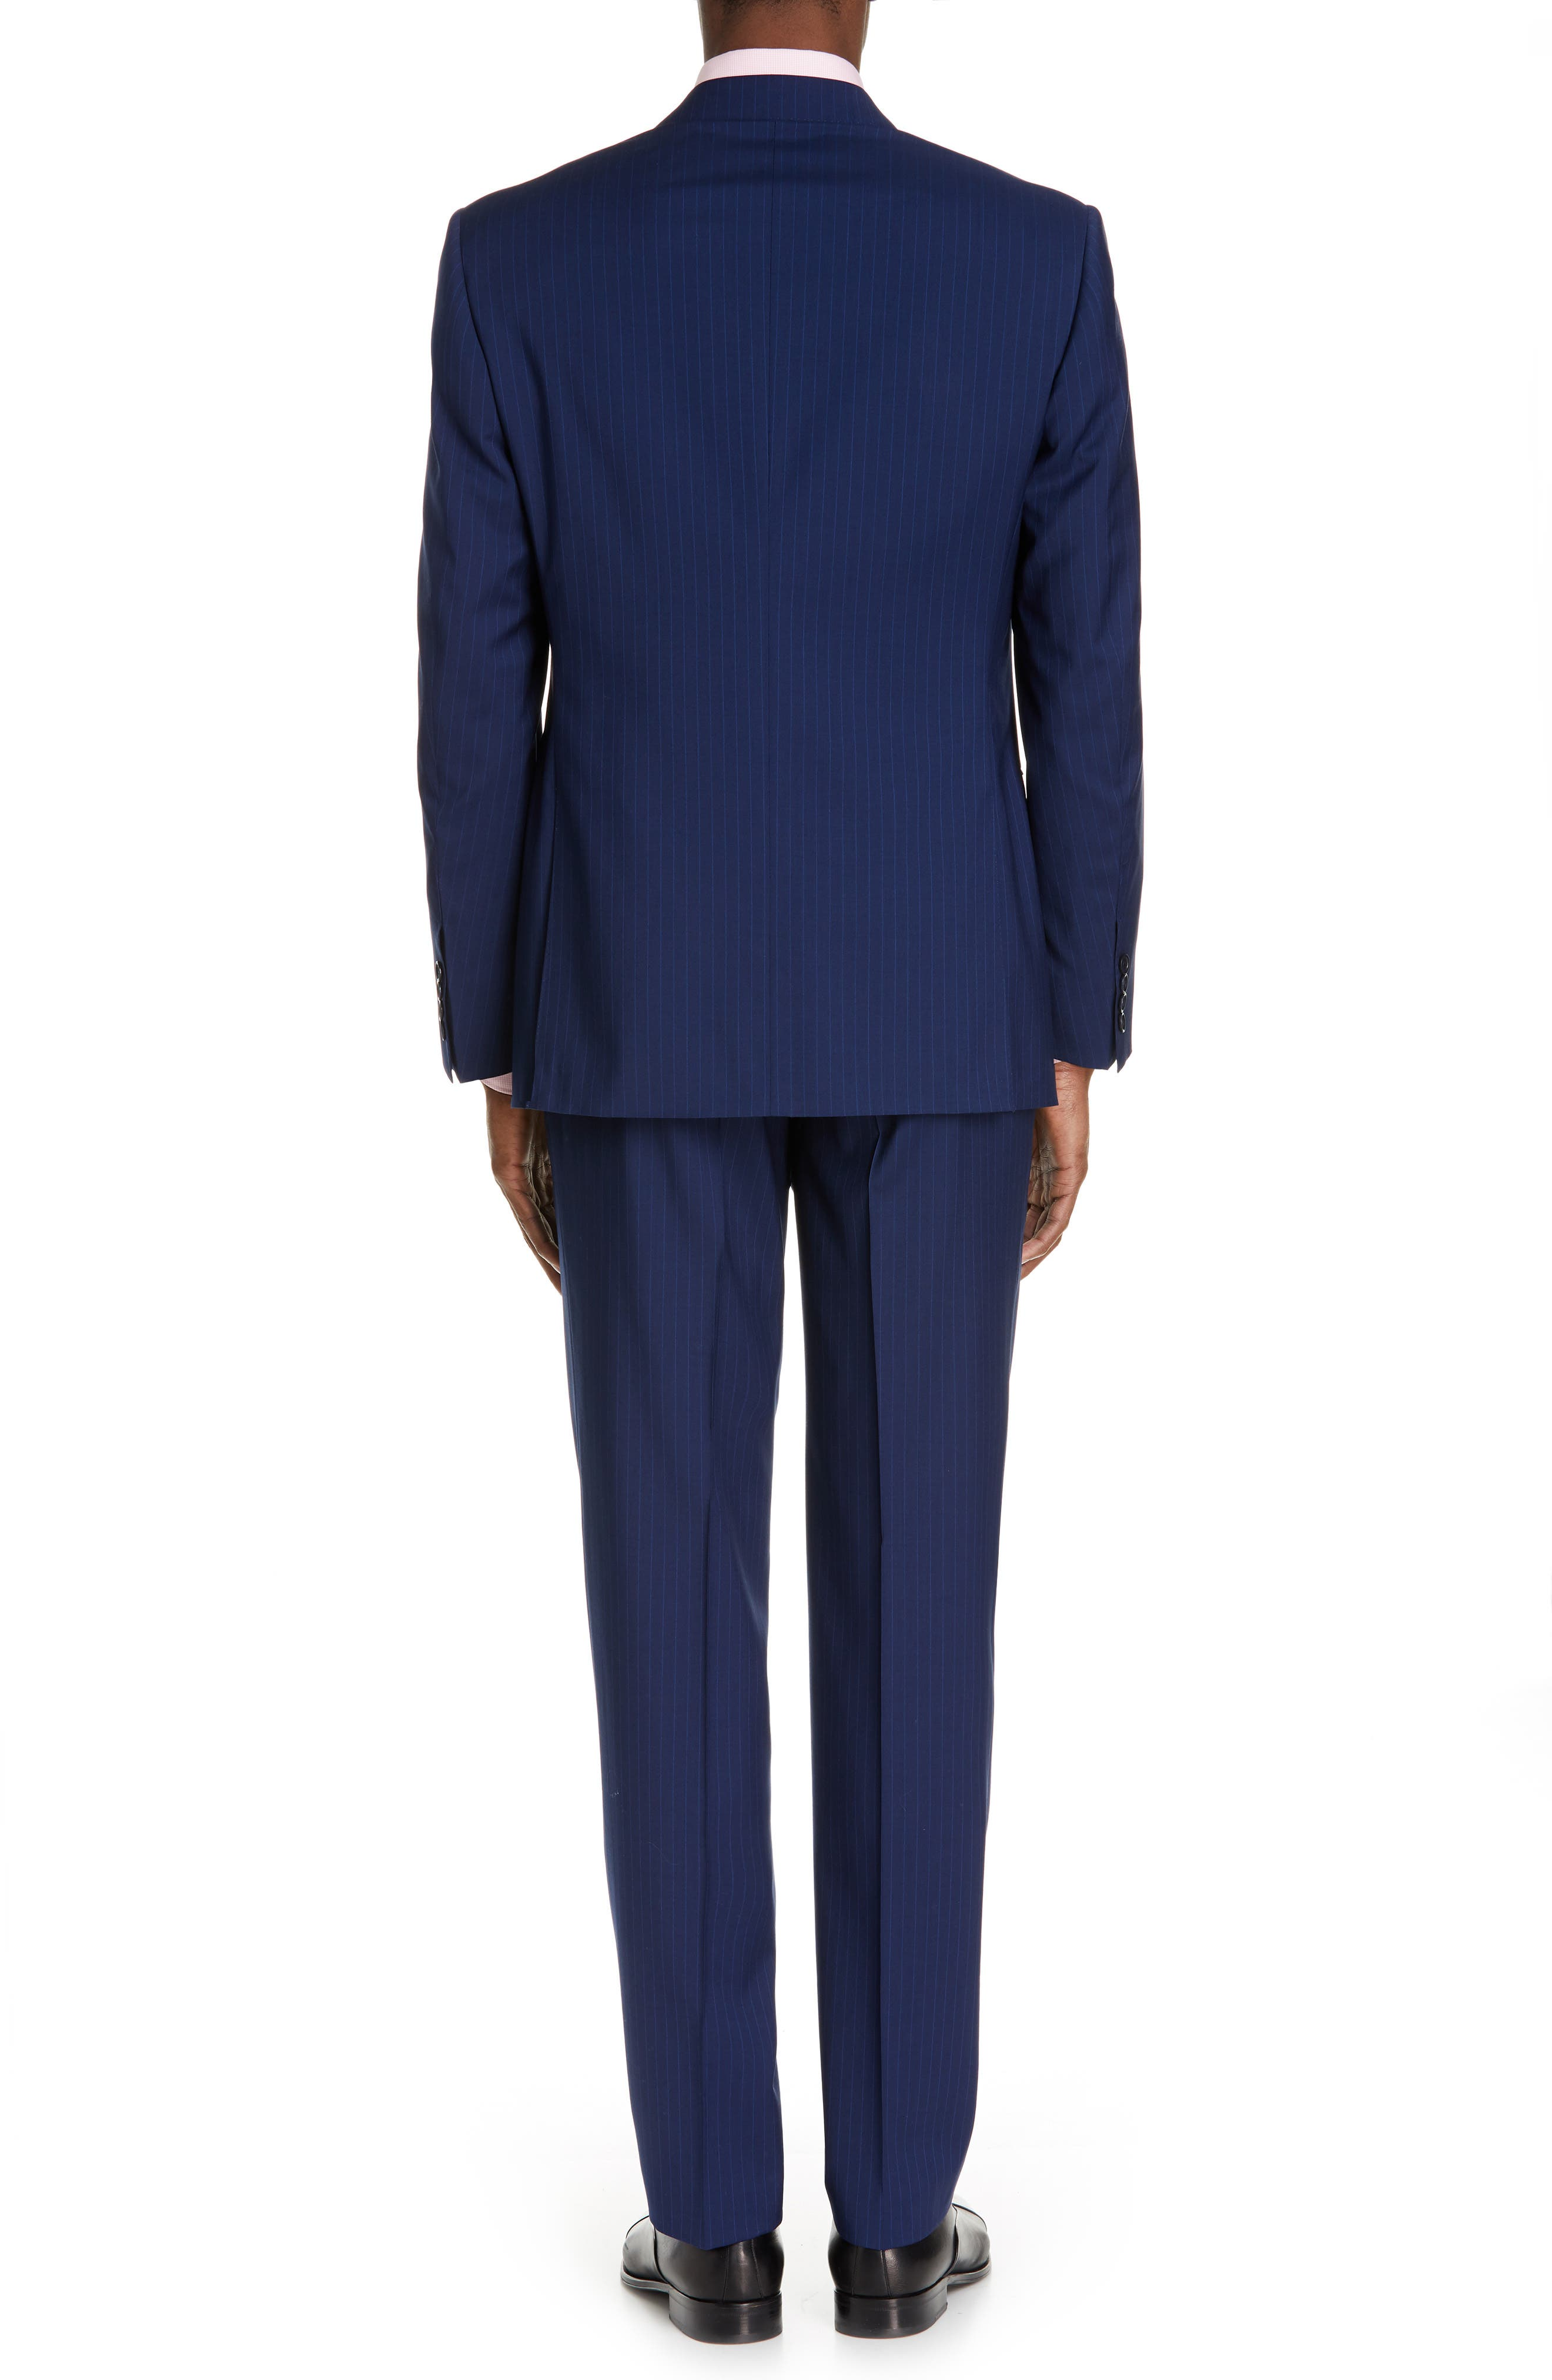 CANALI, Sienna Classic Fit Stripe Wool Suit, Alternate thumbnail 2, color, BLUE